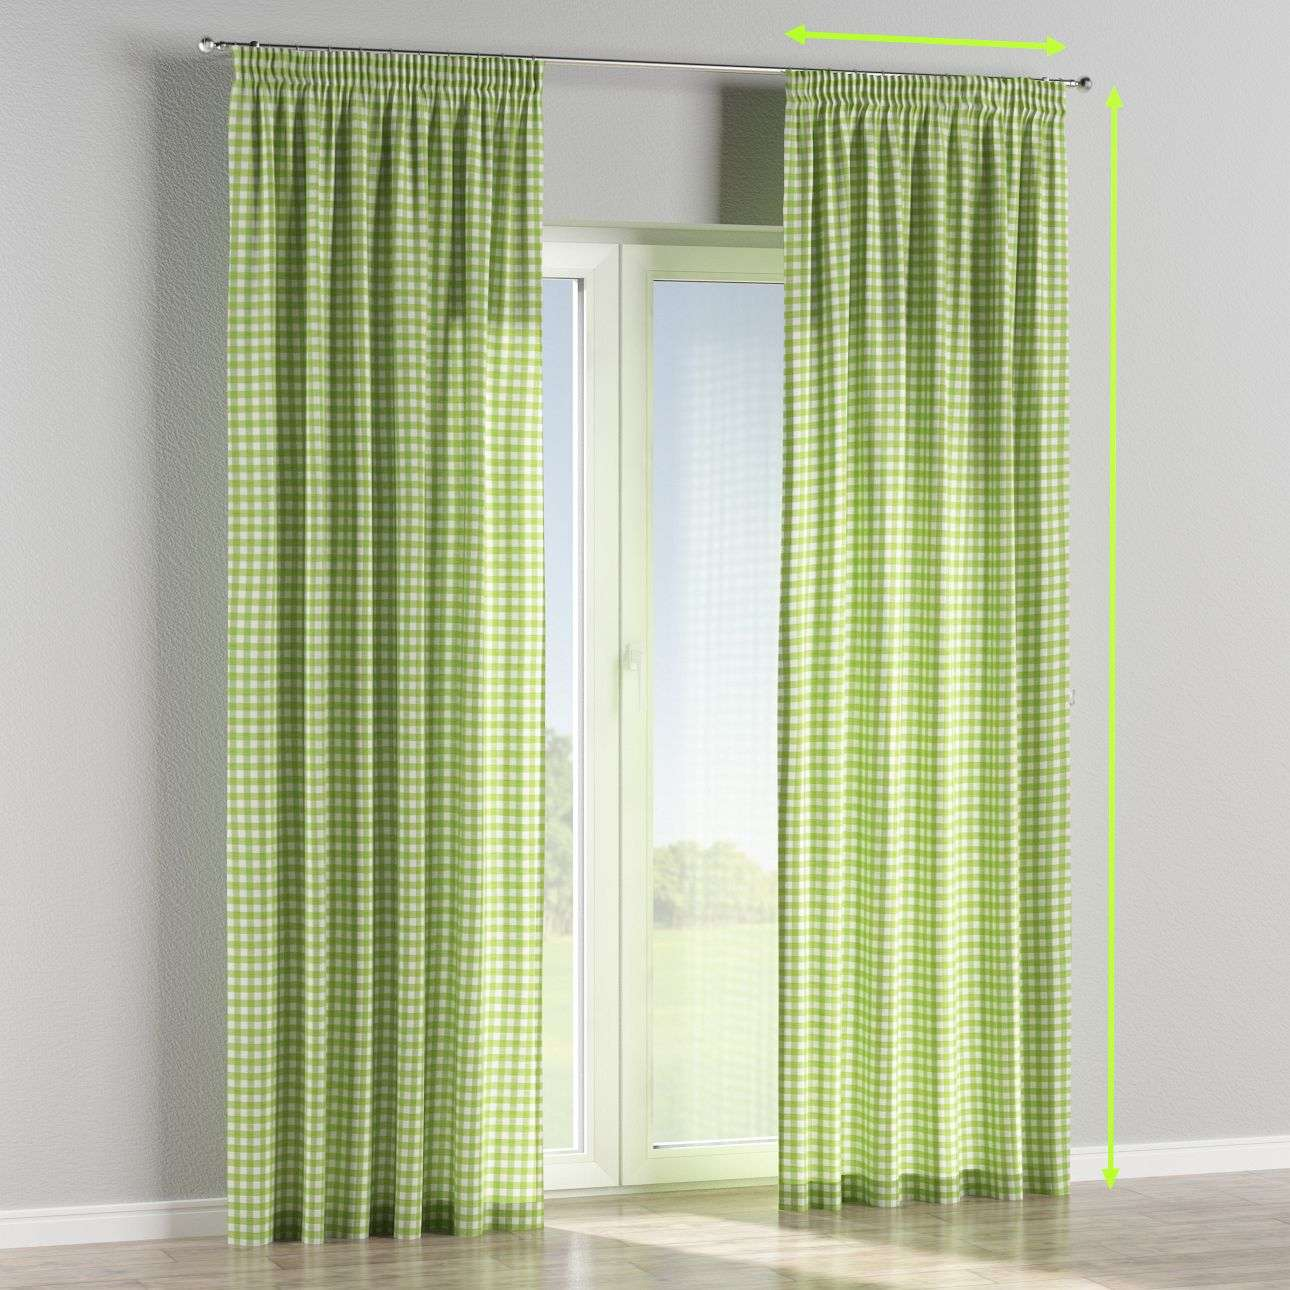 Pencil pleat curtains in collection Quadro, fabric: 136-34